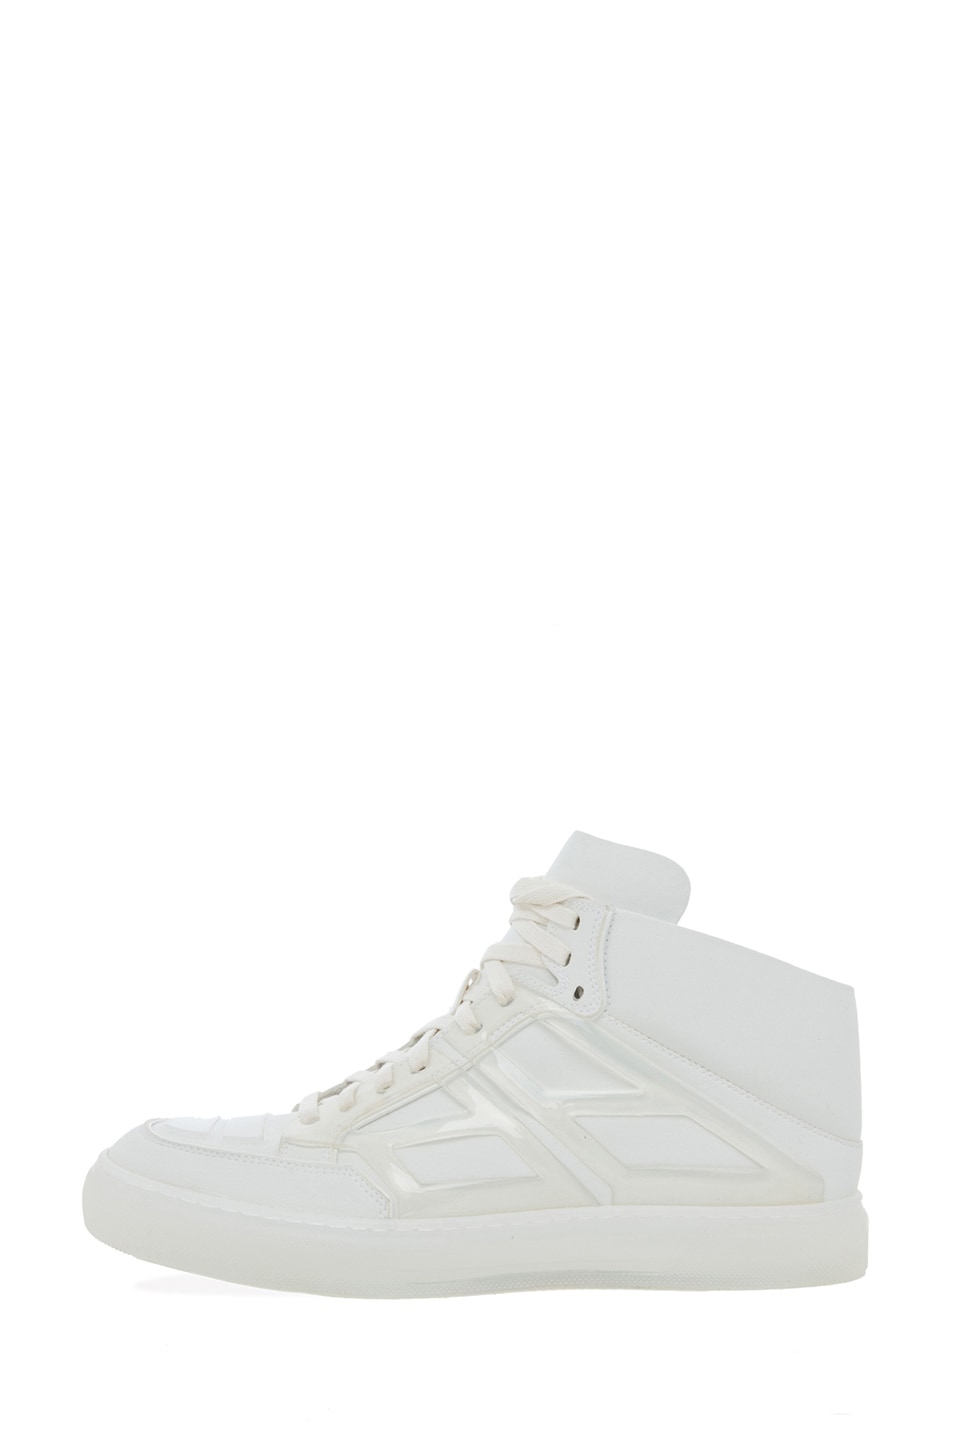 Image 1 of Alejandro Ingelmo Tron Ultra Suede Mid Top in White & Cedar